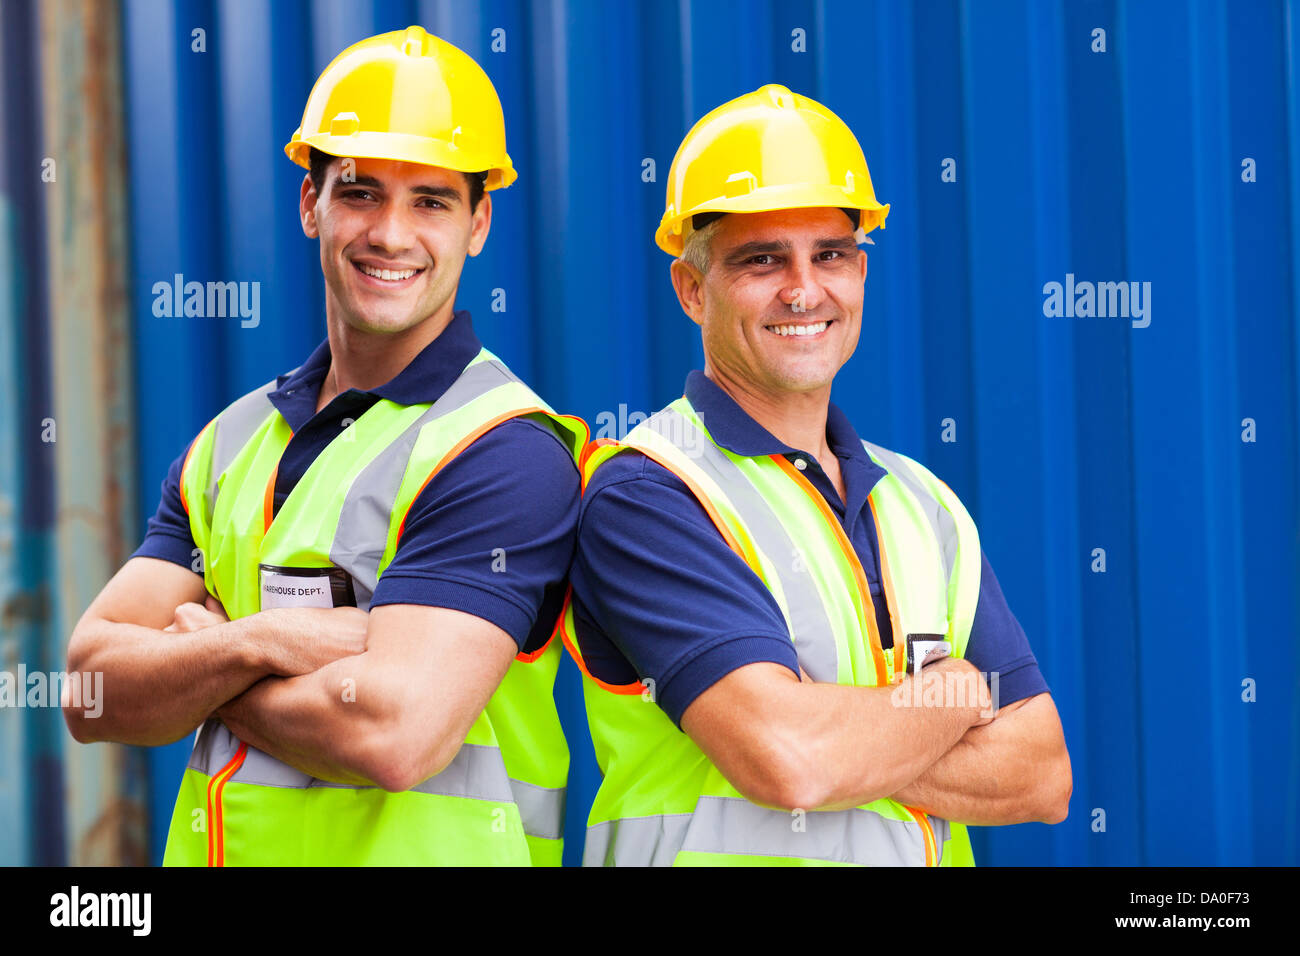 confident harbor worker portrait in container yard - Stock Image